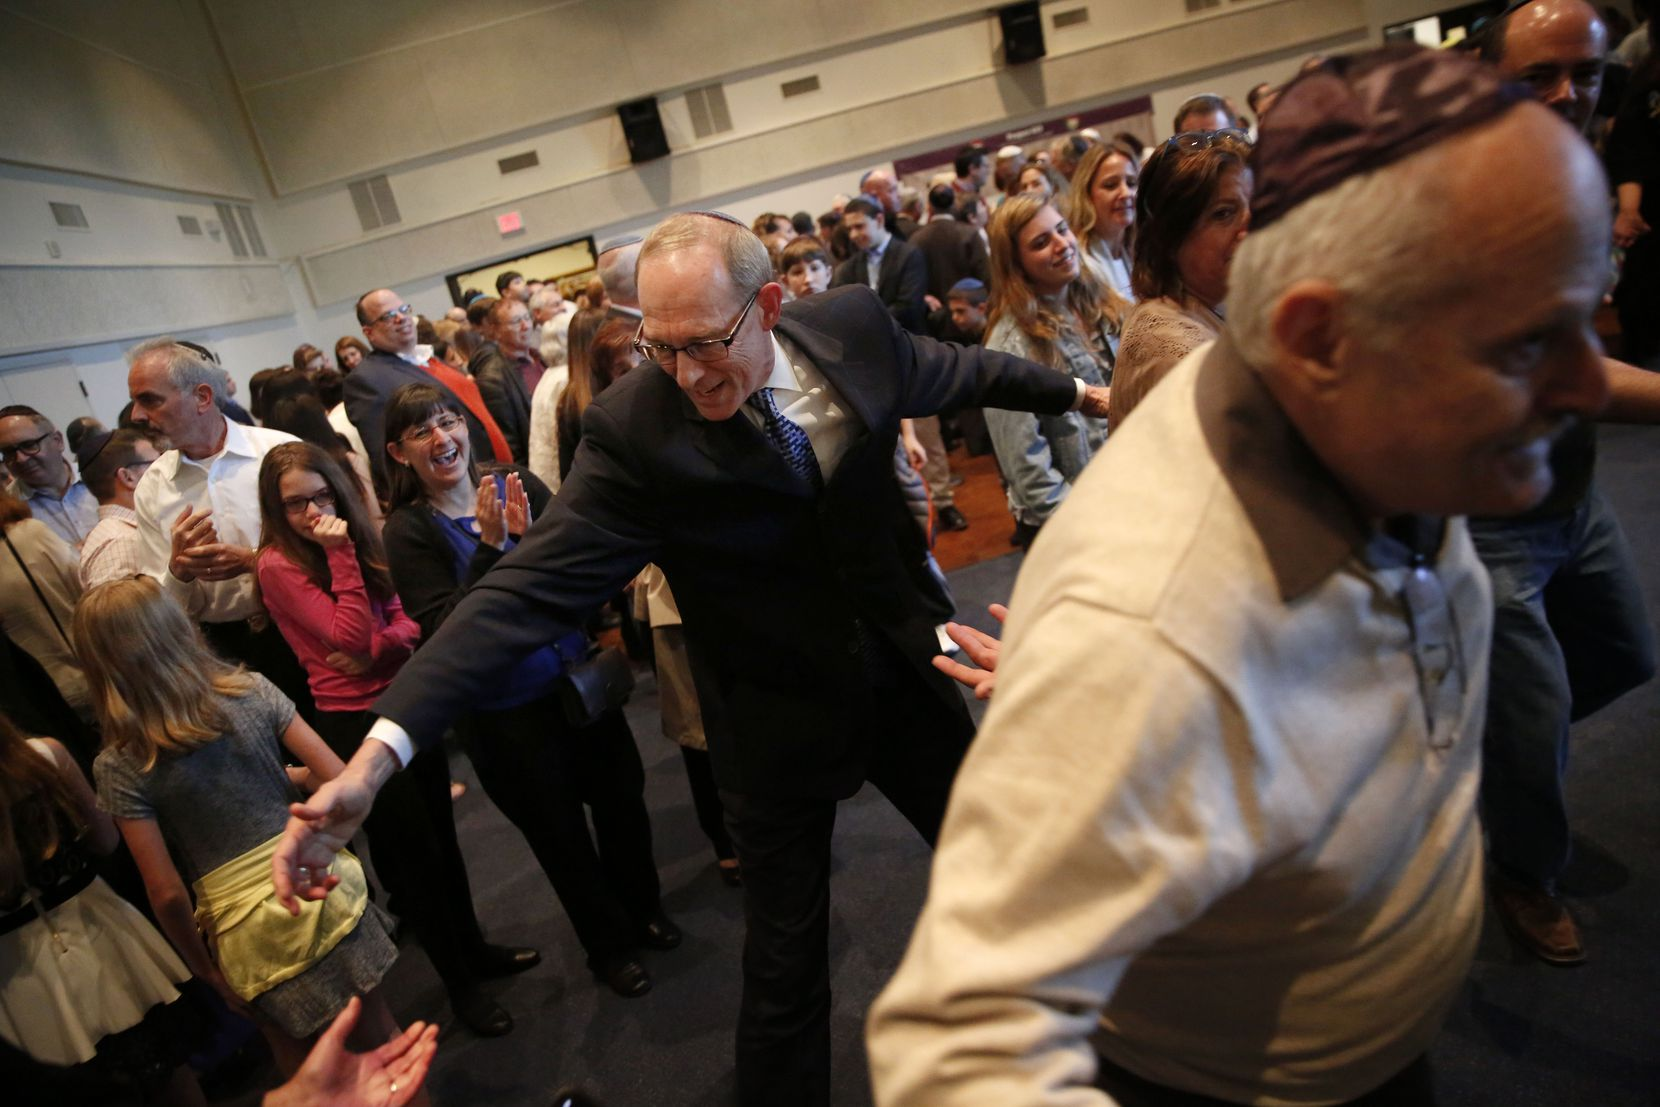 Rabbi Stefan Weinberg encourages congregants to dance in celebration of the arrival of the new torah honoring his late wife, Wende Weinberg, at Anshai Torah in Plano.